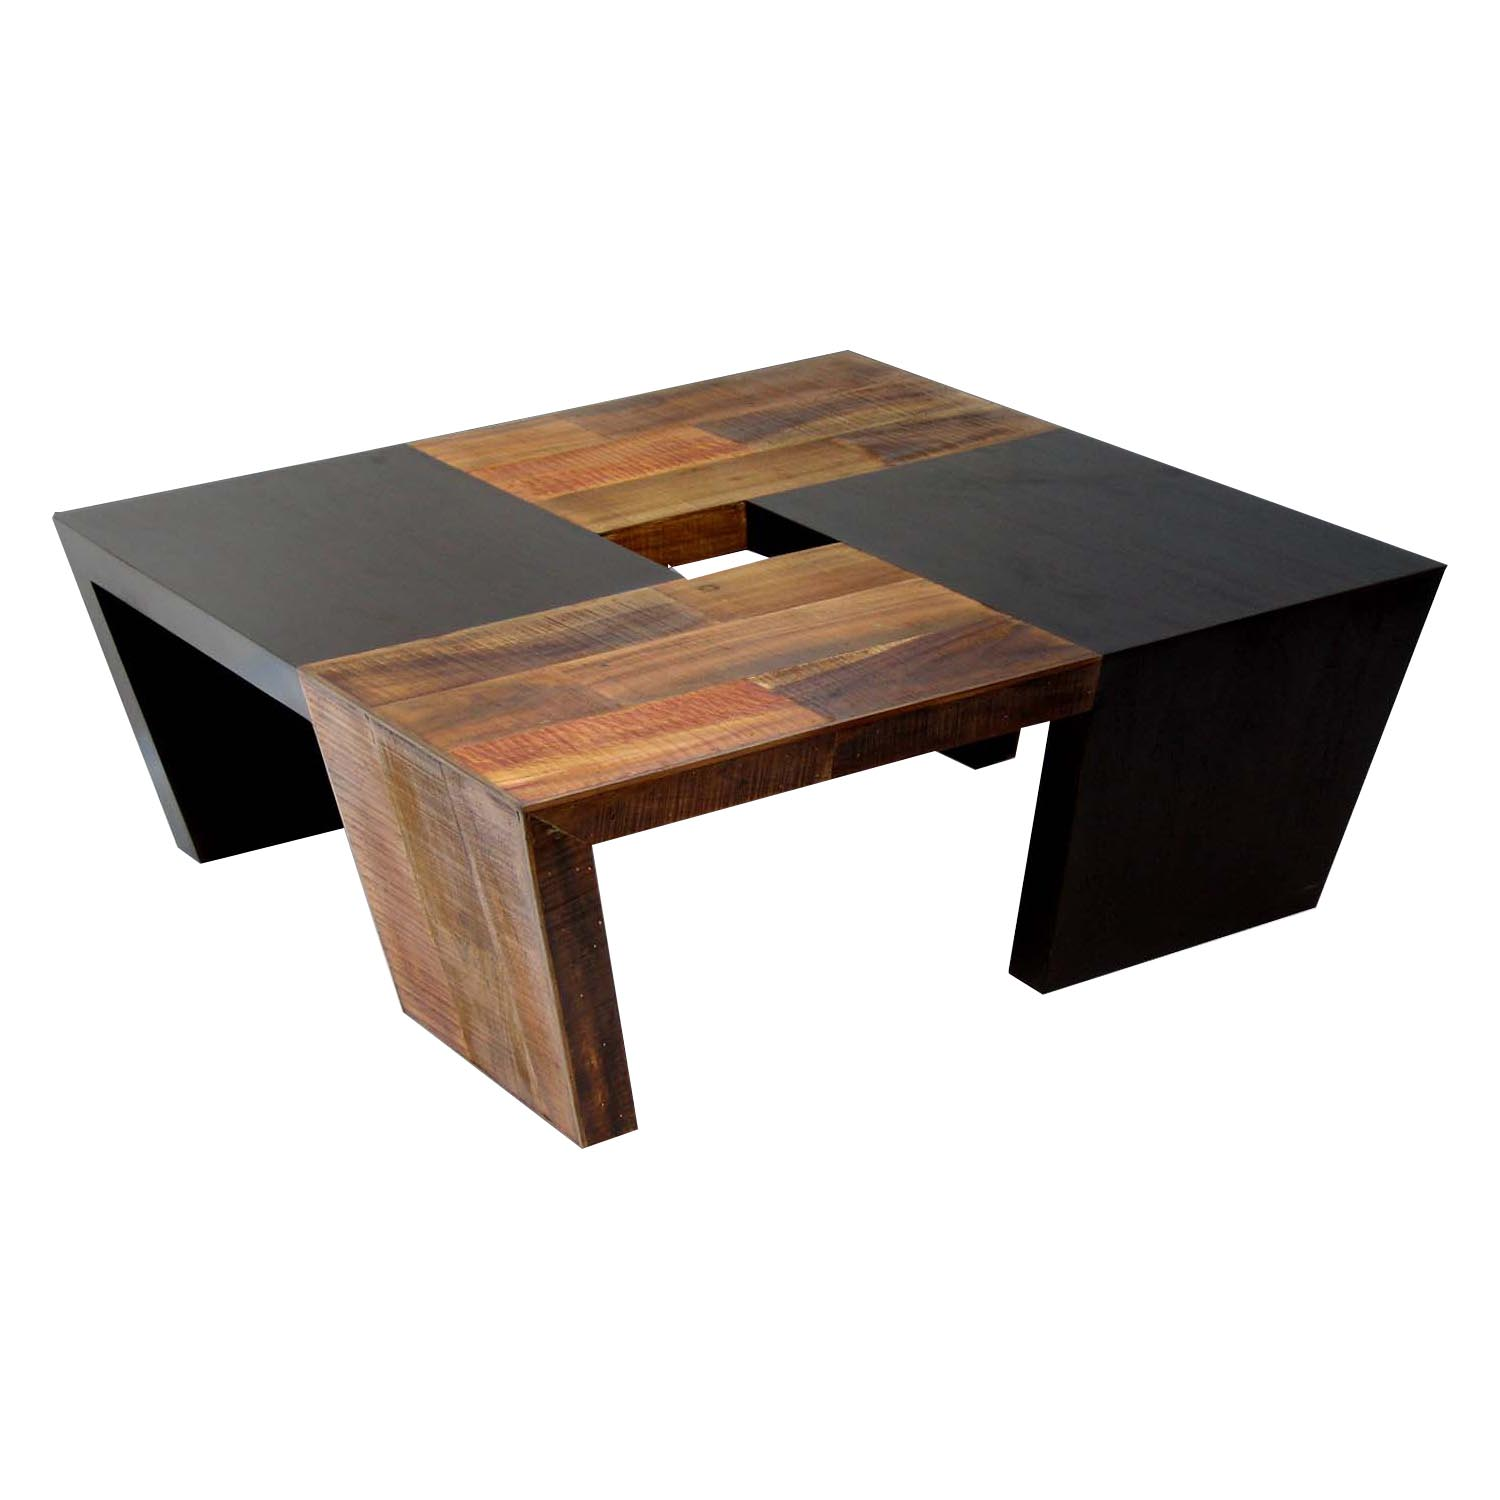 Modern wood coffee table coffee table design ideas for Innovative table